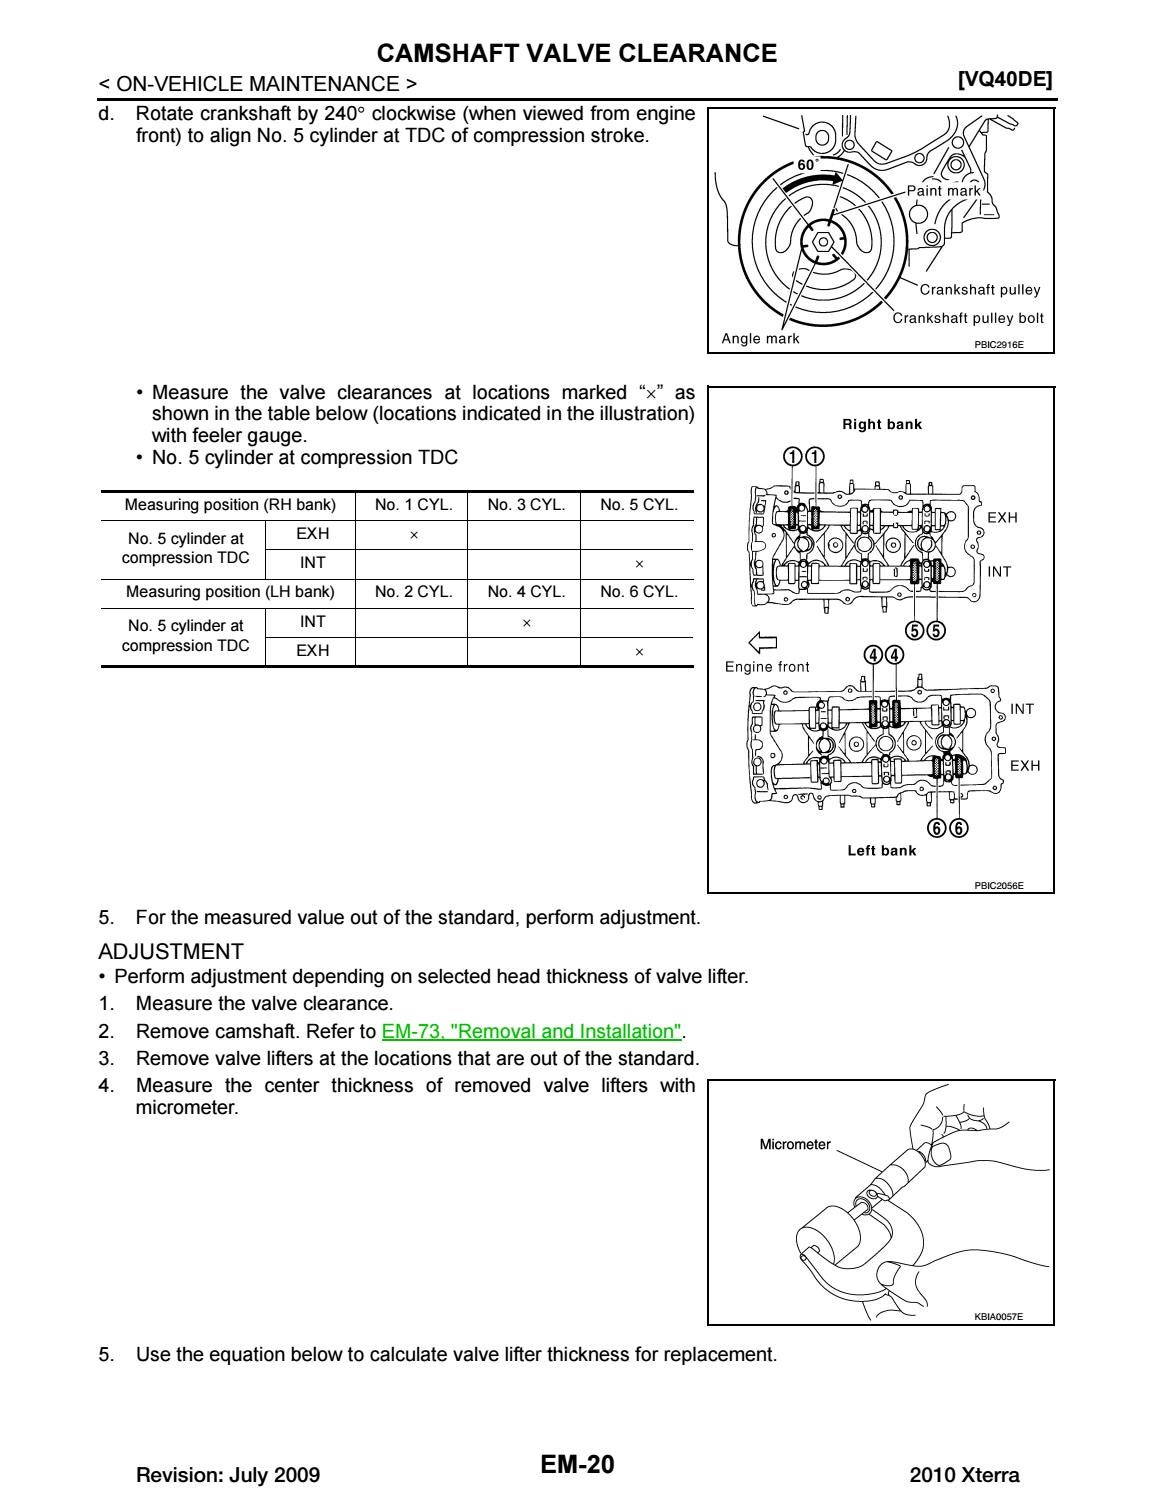 Nissan Rogue Service Manual: Camshaft valve clearance